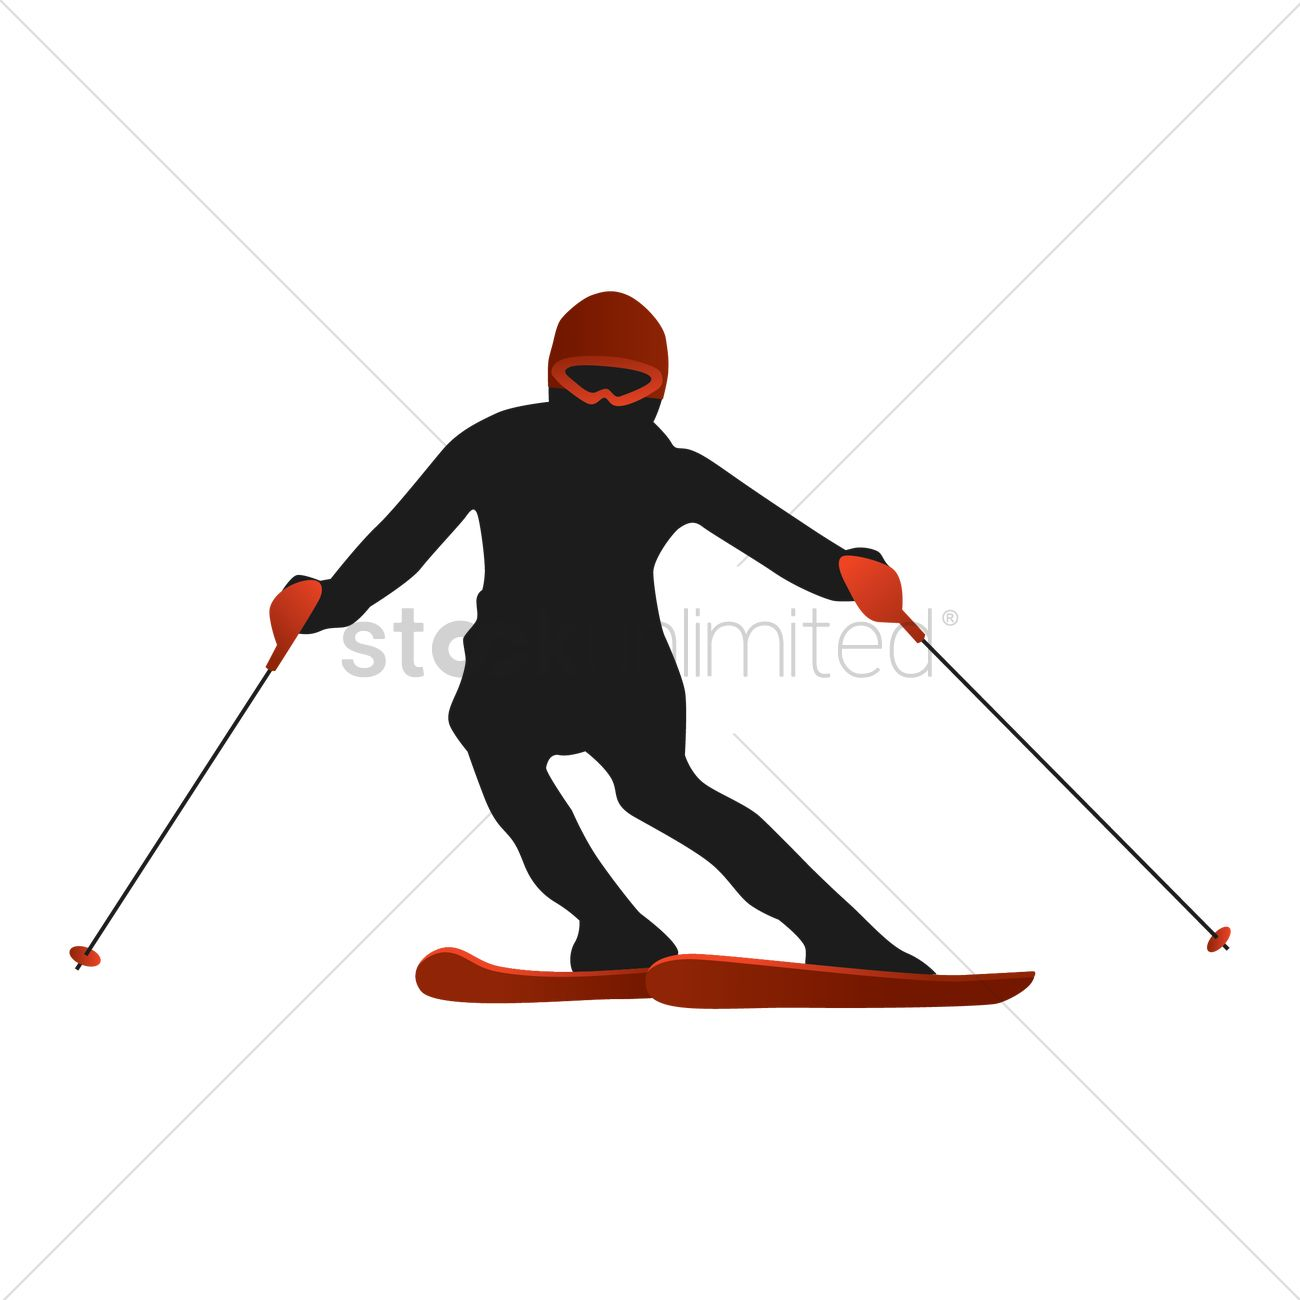 1300x1300 Free Skier Silhouette Vector Image